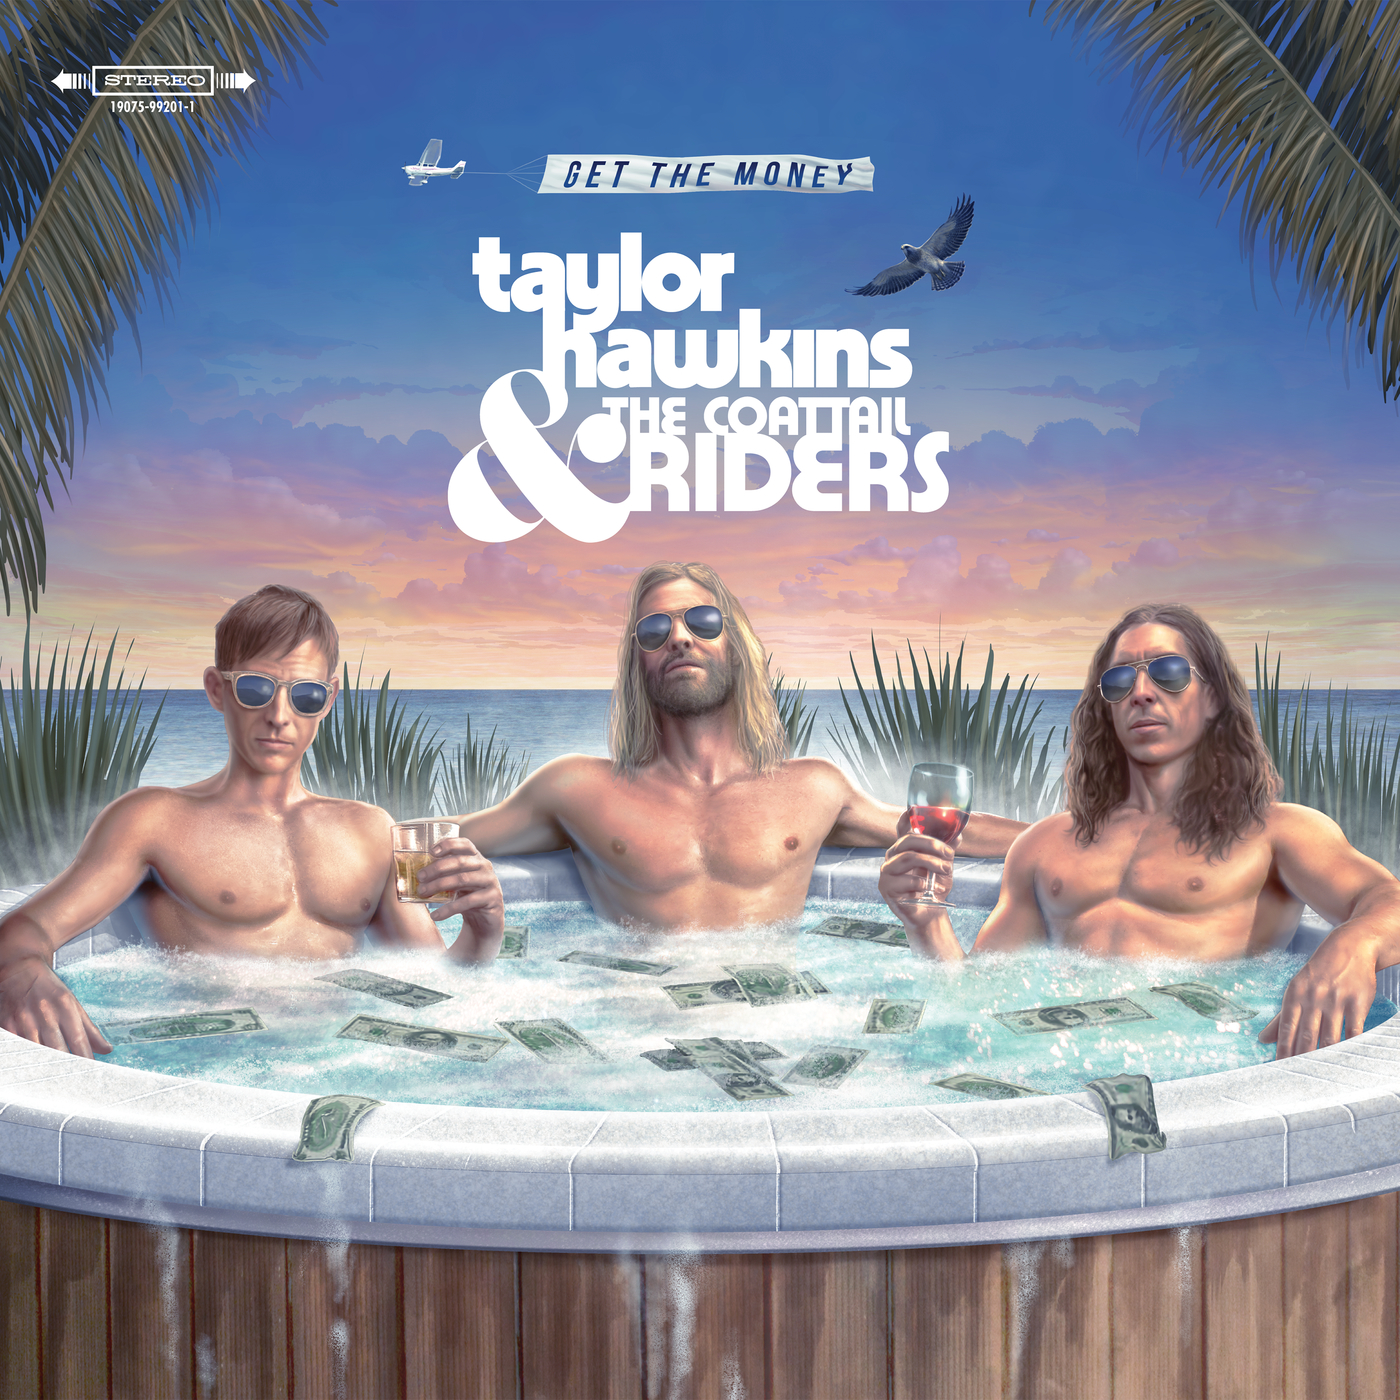 Middle Child - Taylor Hawkins & The Coattail Riders